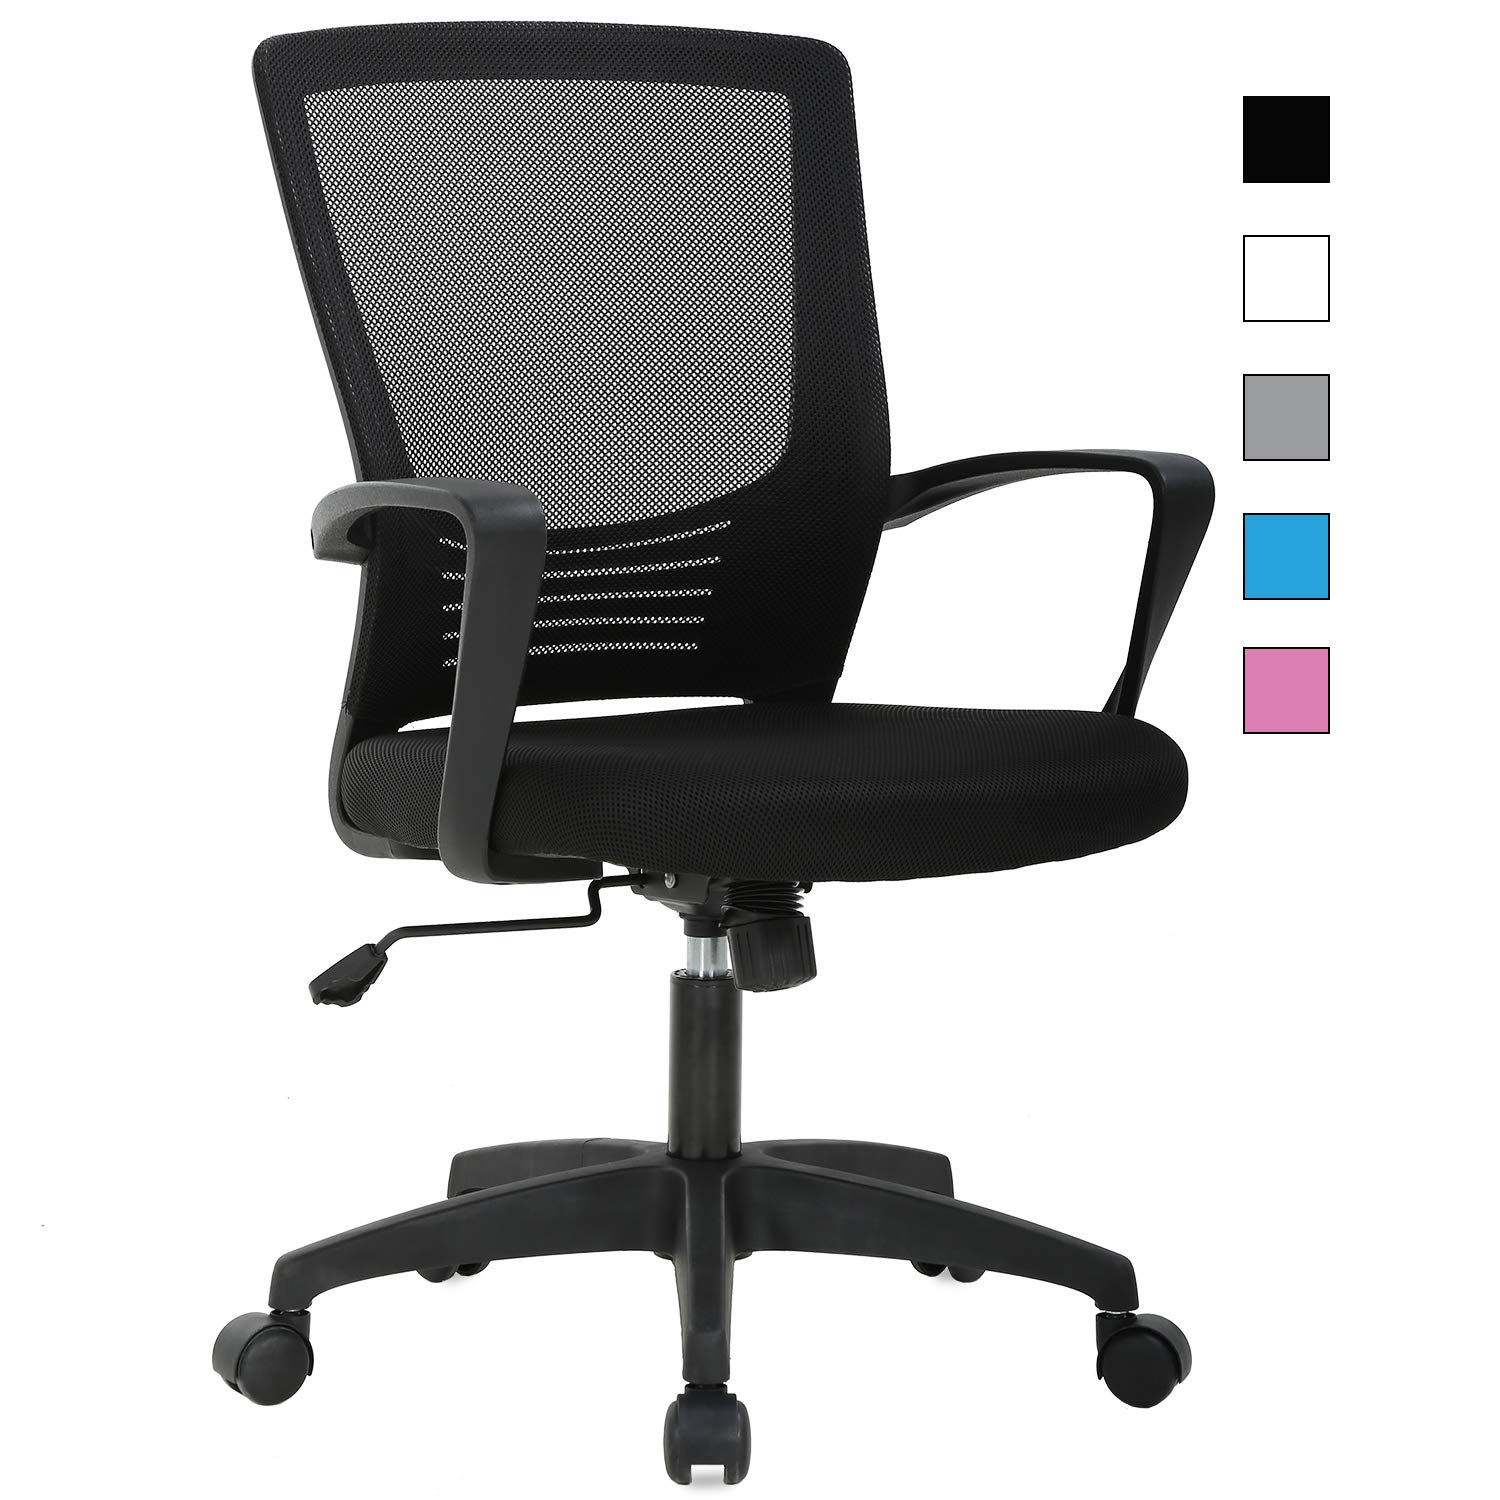 Ergonomic Office Chair, Mid Back Desk Chair Mesh Computer Chair Executive Rolling Swivel Adjustable Task Chair with Lumbar Support Armrest for Adults Women,Black